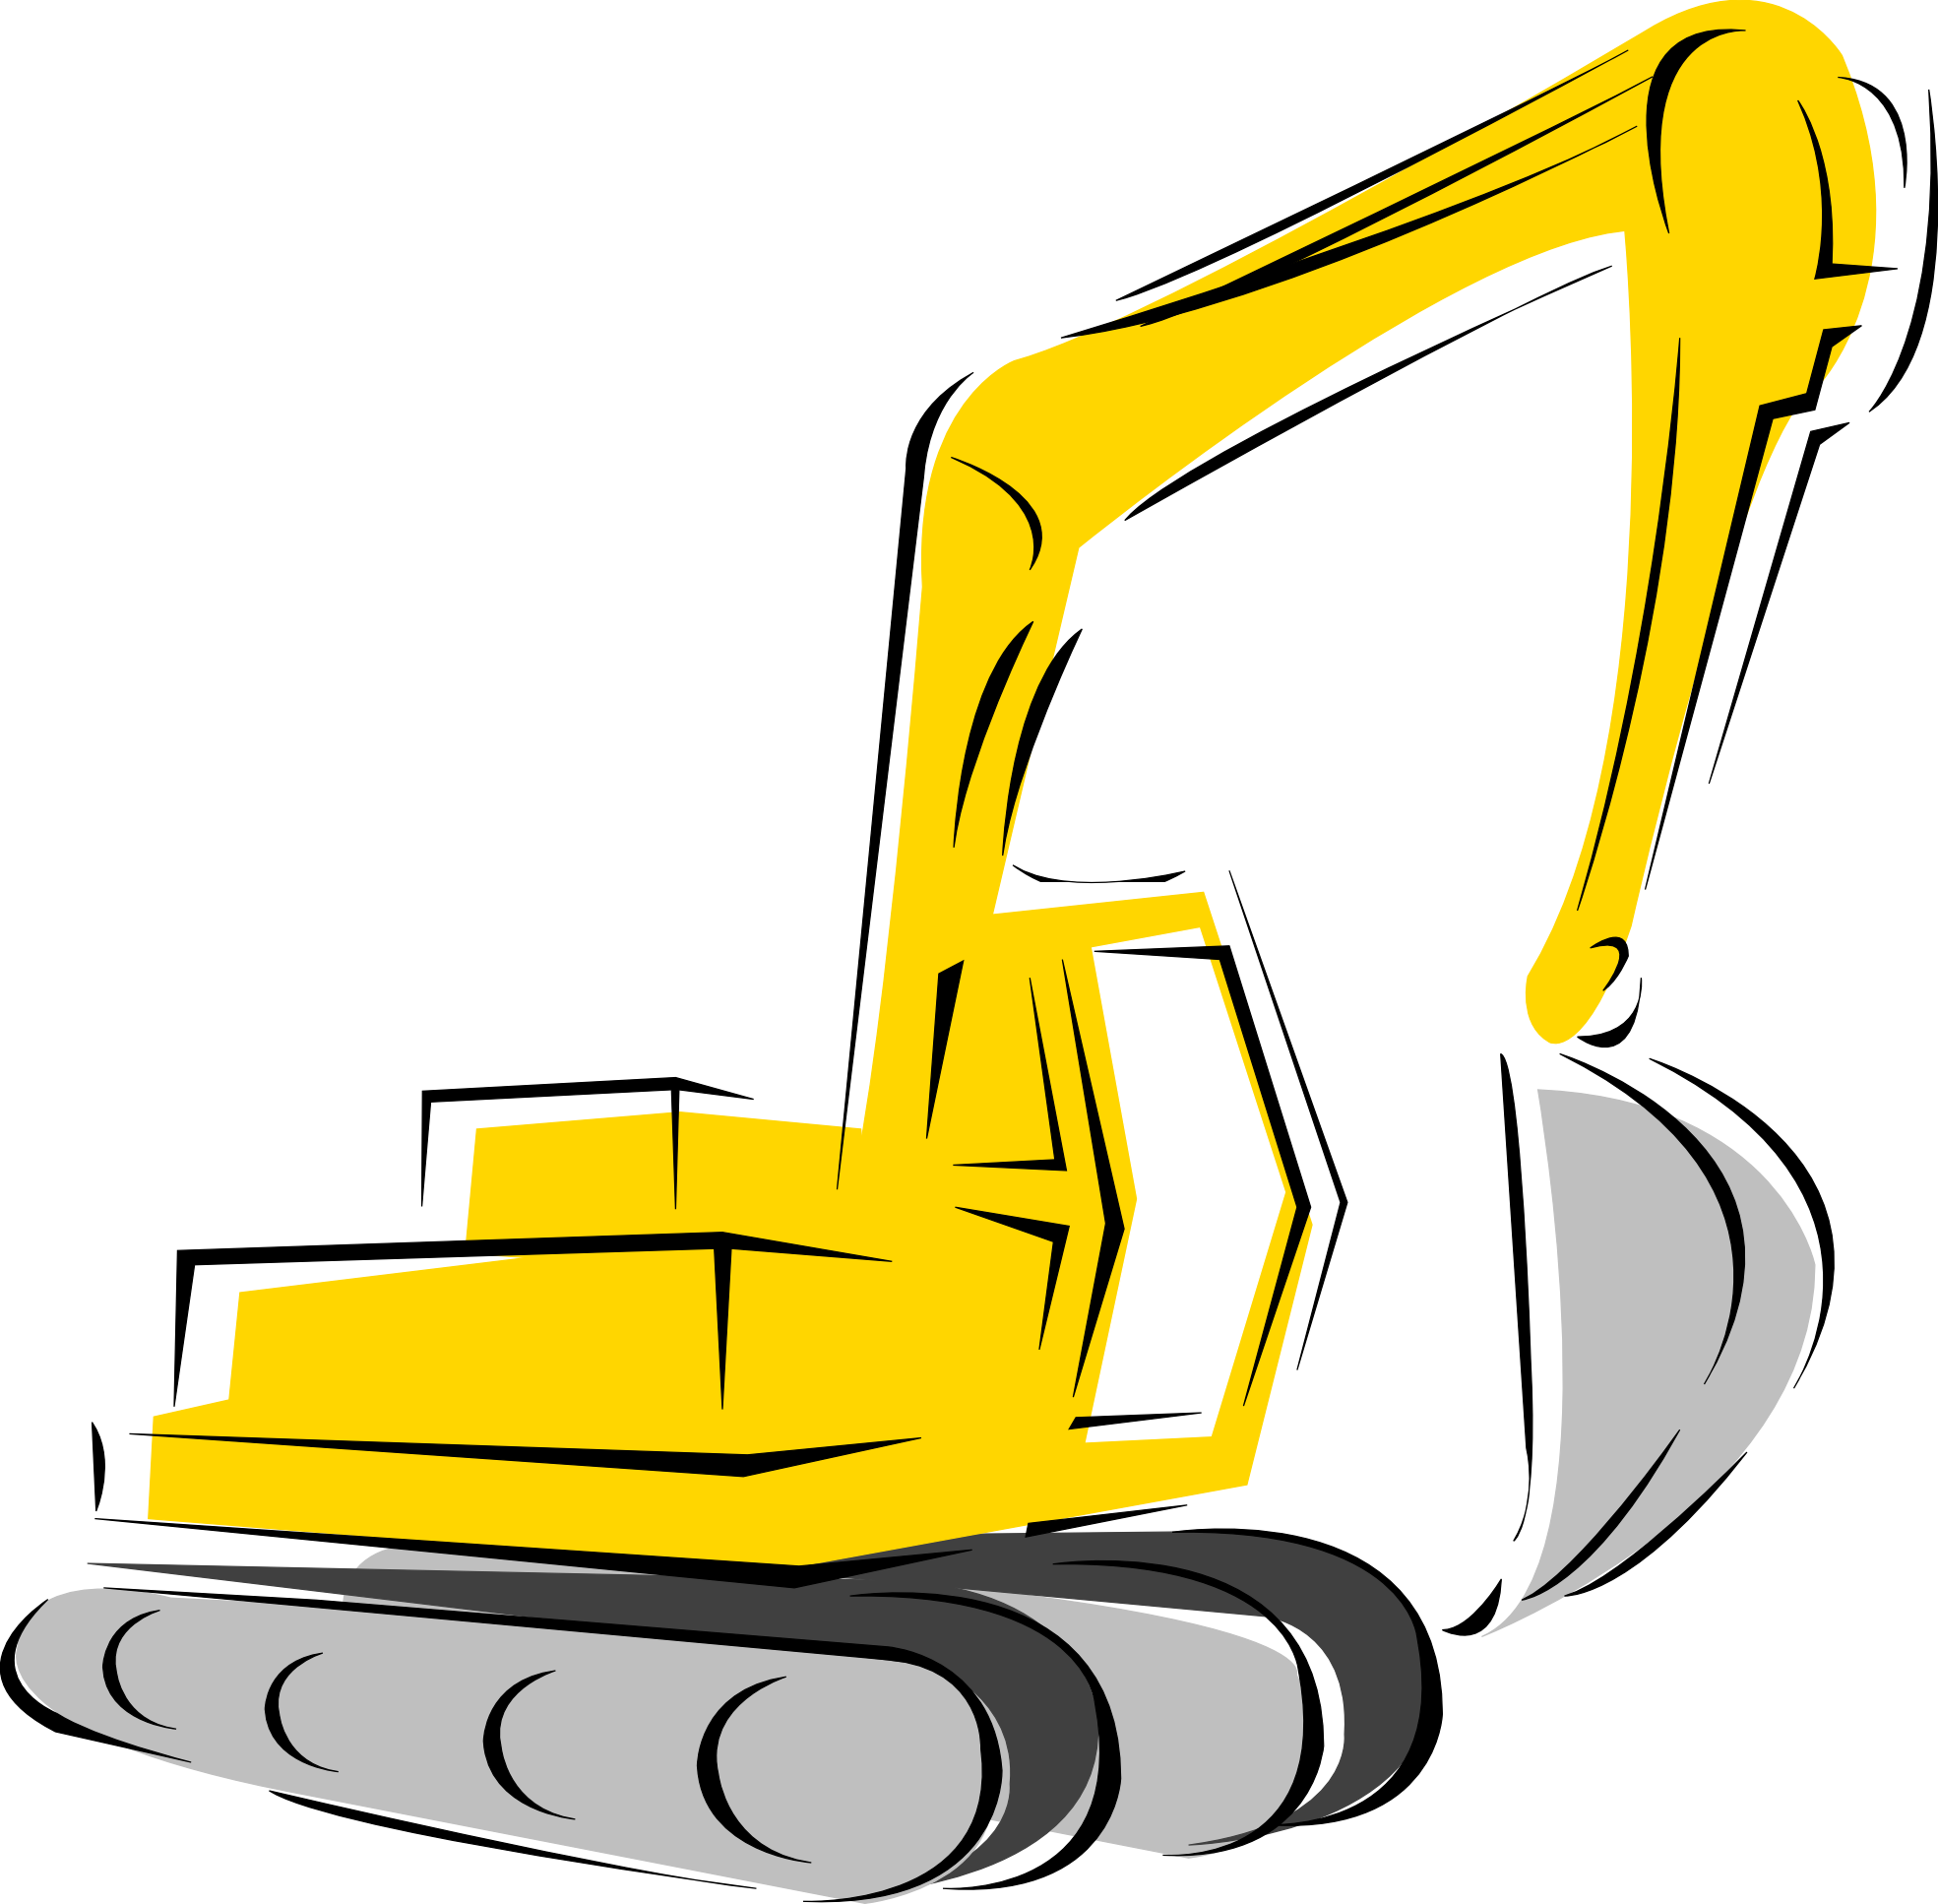 Silhouette at getdrawings com. Backhoe clipart excavator arm black and white